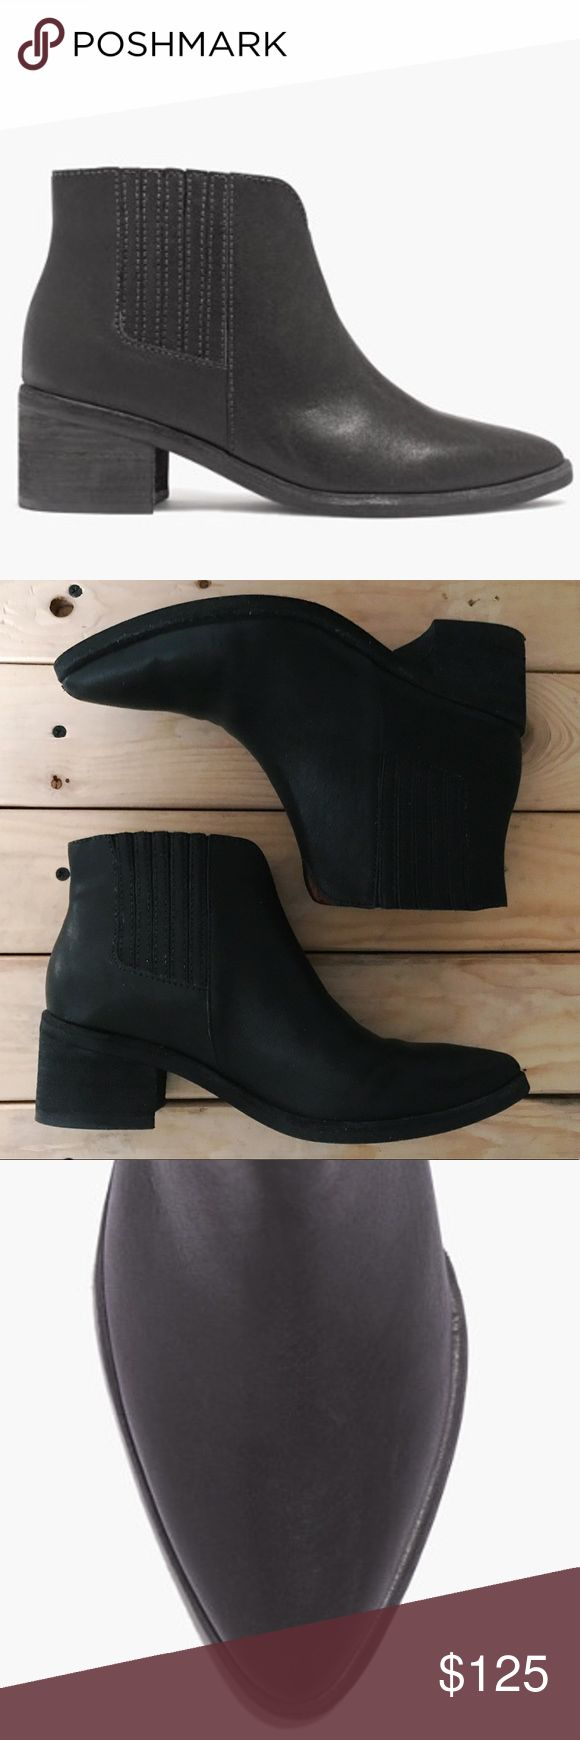 "Madewell Joni Boot / Size 7.5 •Black Chelsea boot with a slight Western vibe  •Leather upper and lining  •Low stacked heel (2"") •Shaft height: 3 7/10""  •Shaft circumference: 9 2/5"" •Man-made sole •Worn only 5 times; one small scratch on the right toe (see picture 4) •No box Madewell Shoes Ankle Boots & Booties"